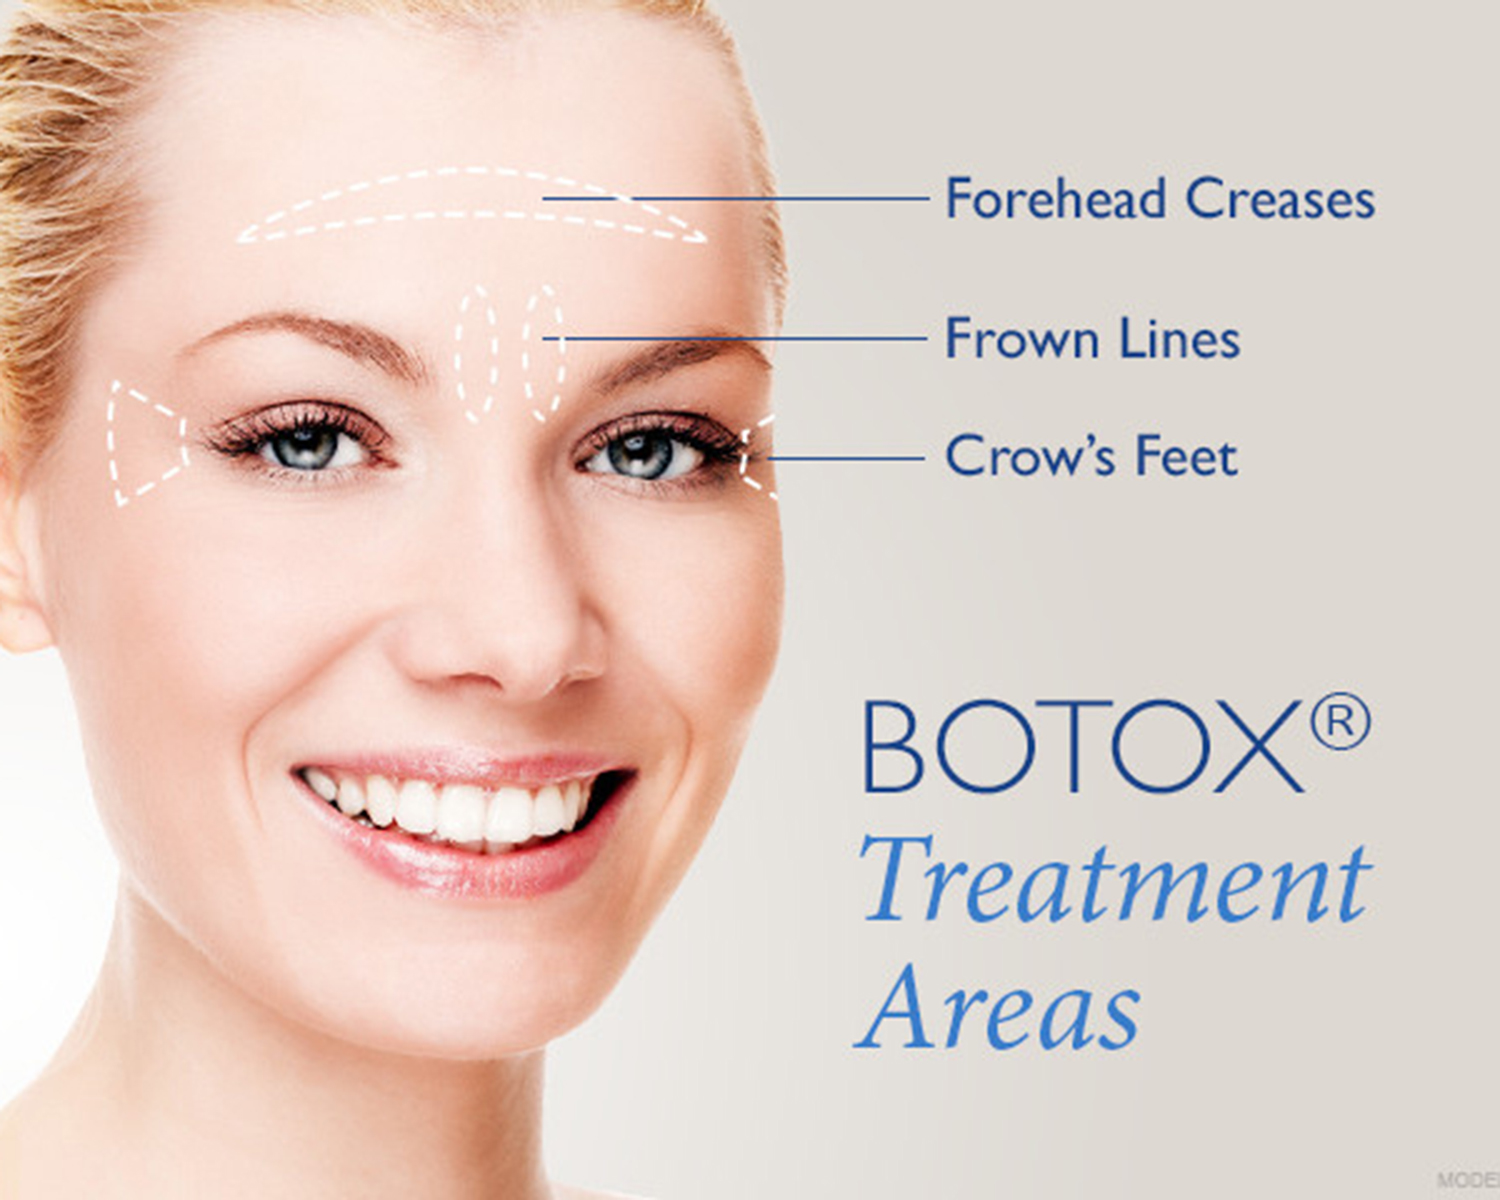 Botox current